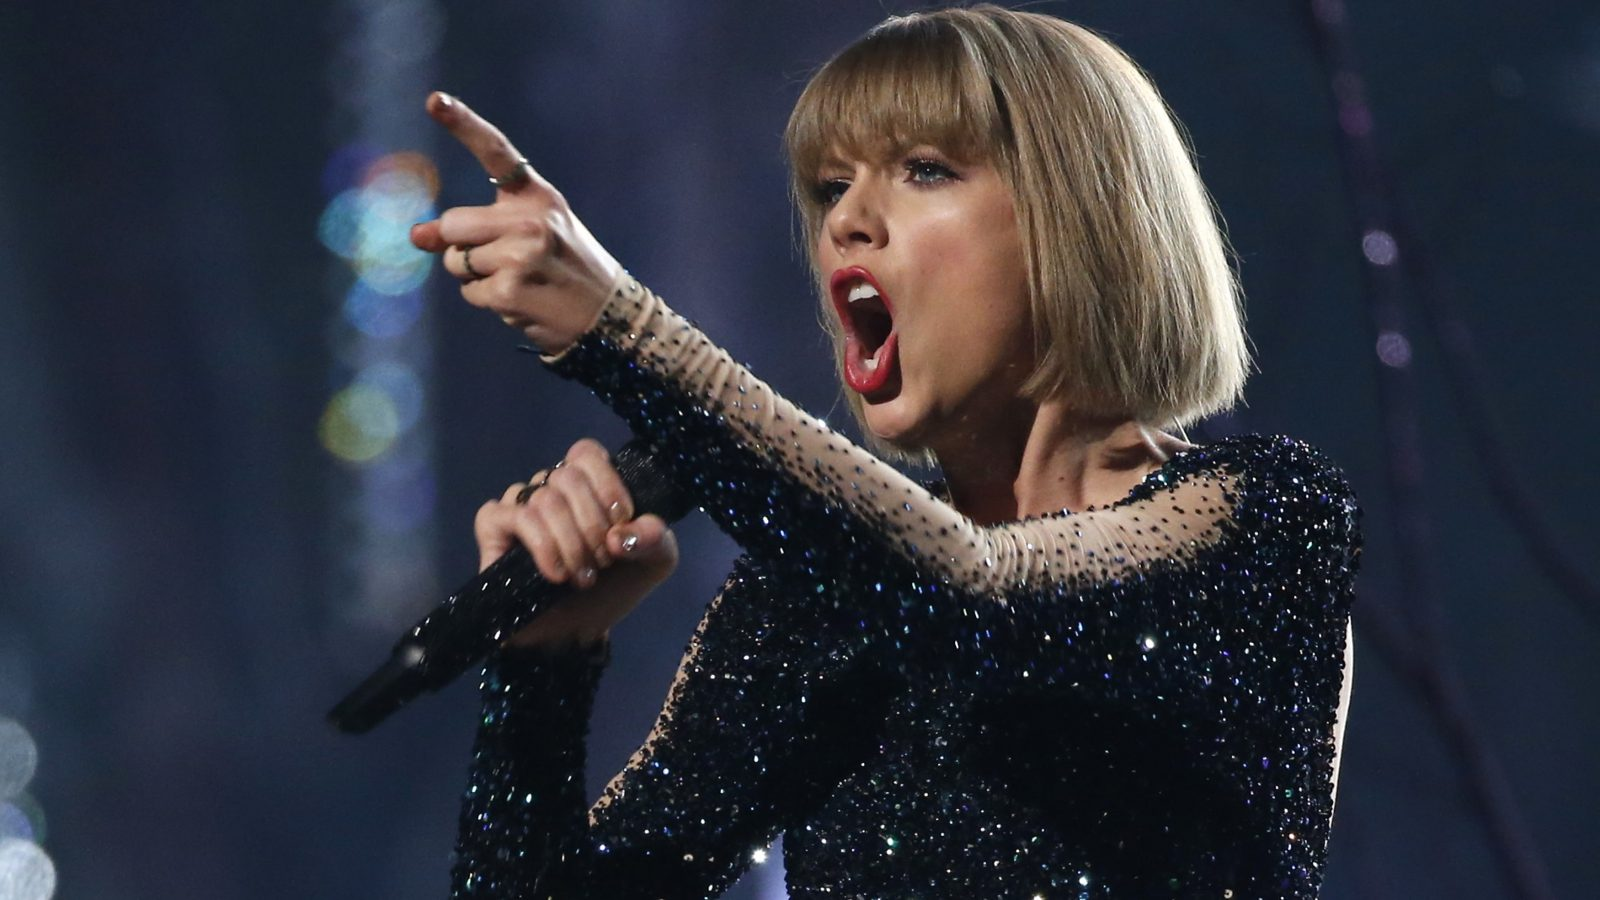 """Taylor Swift performs """"Out of the Woods"""" at the 58th Grammy Awards in Los Angeles, California February 15, 2016.  REUTERS/Mario Anzuoni - RTX273CH"""